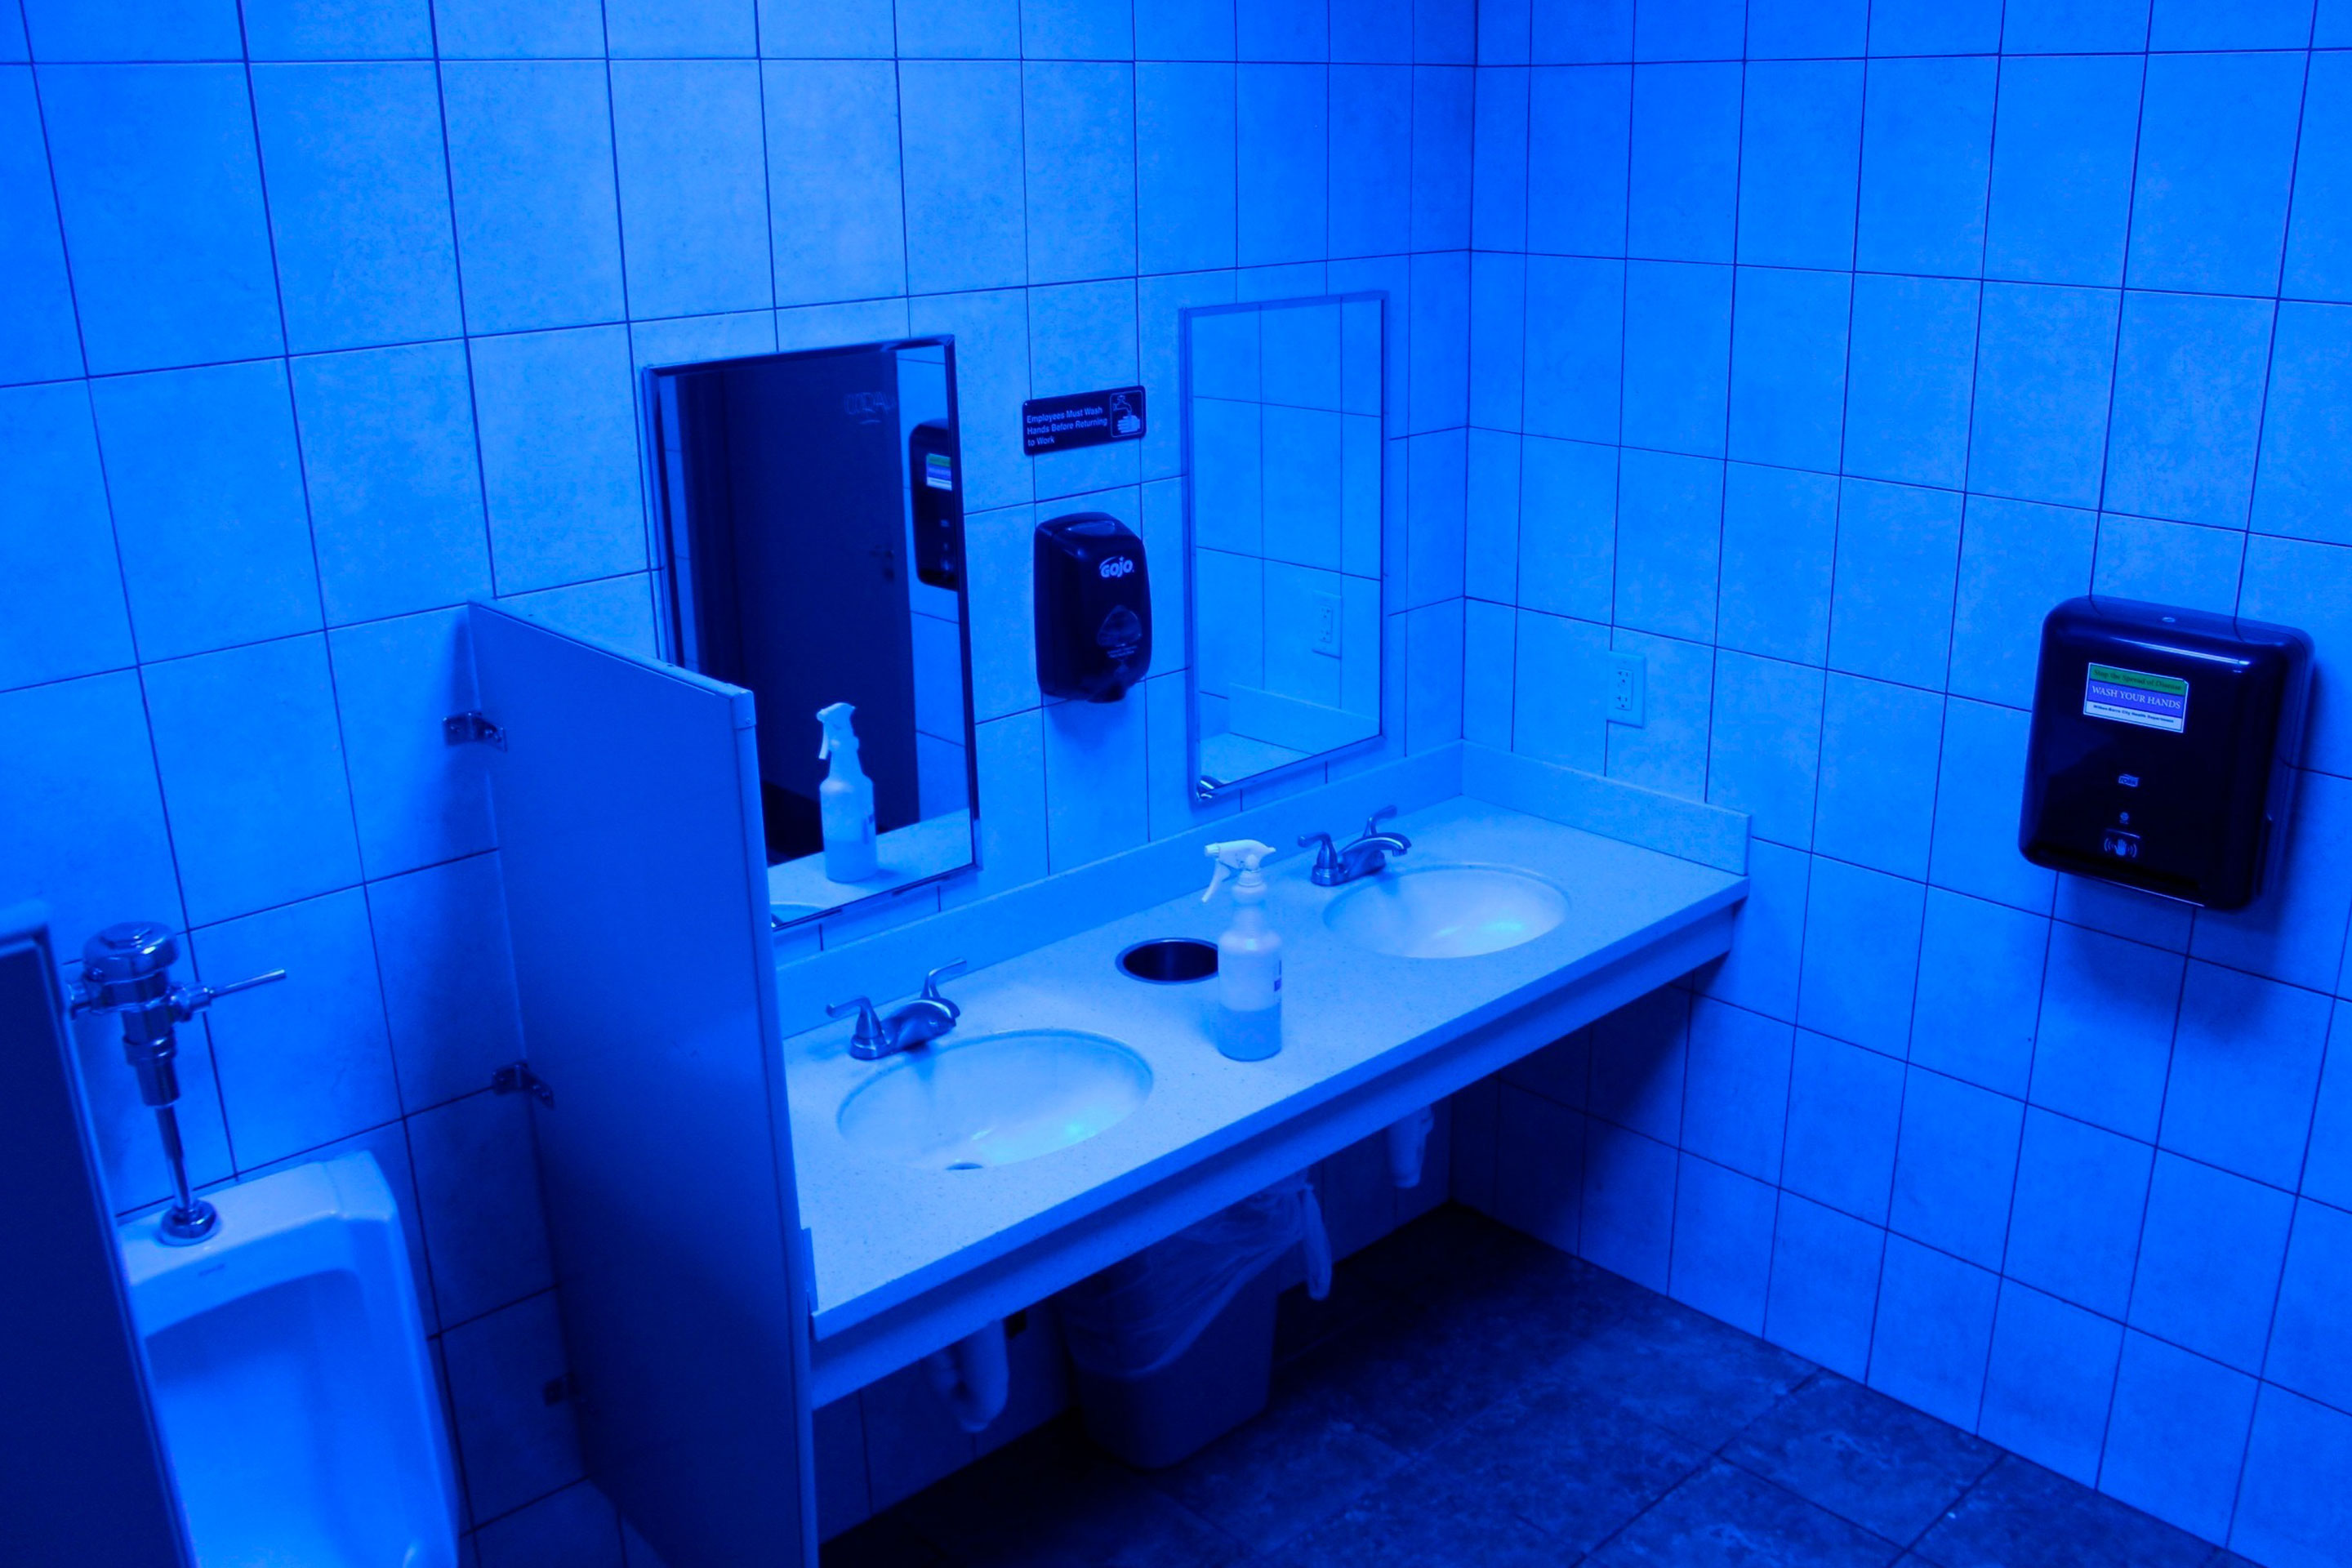 A public bathroom bathed in blue light is seen at this Turkey Hill convenience store in Wilkes-Barre, Pa.